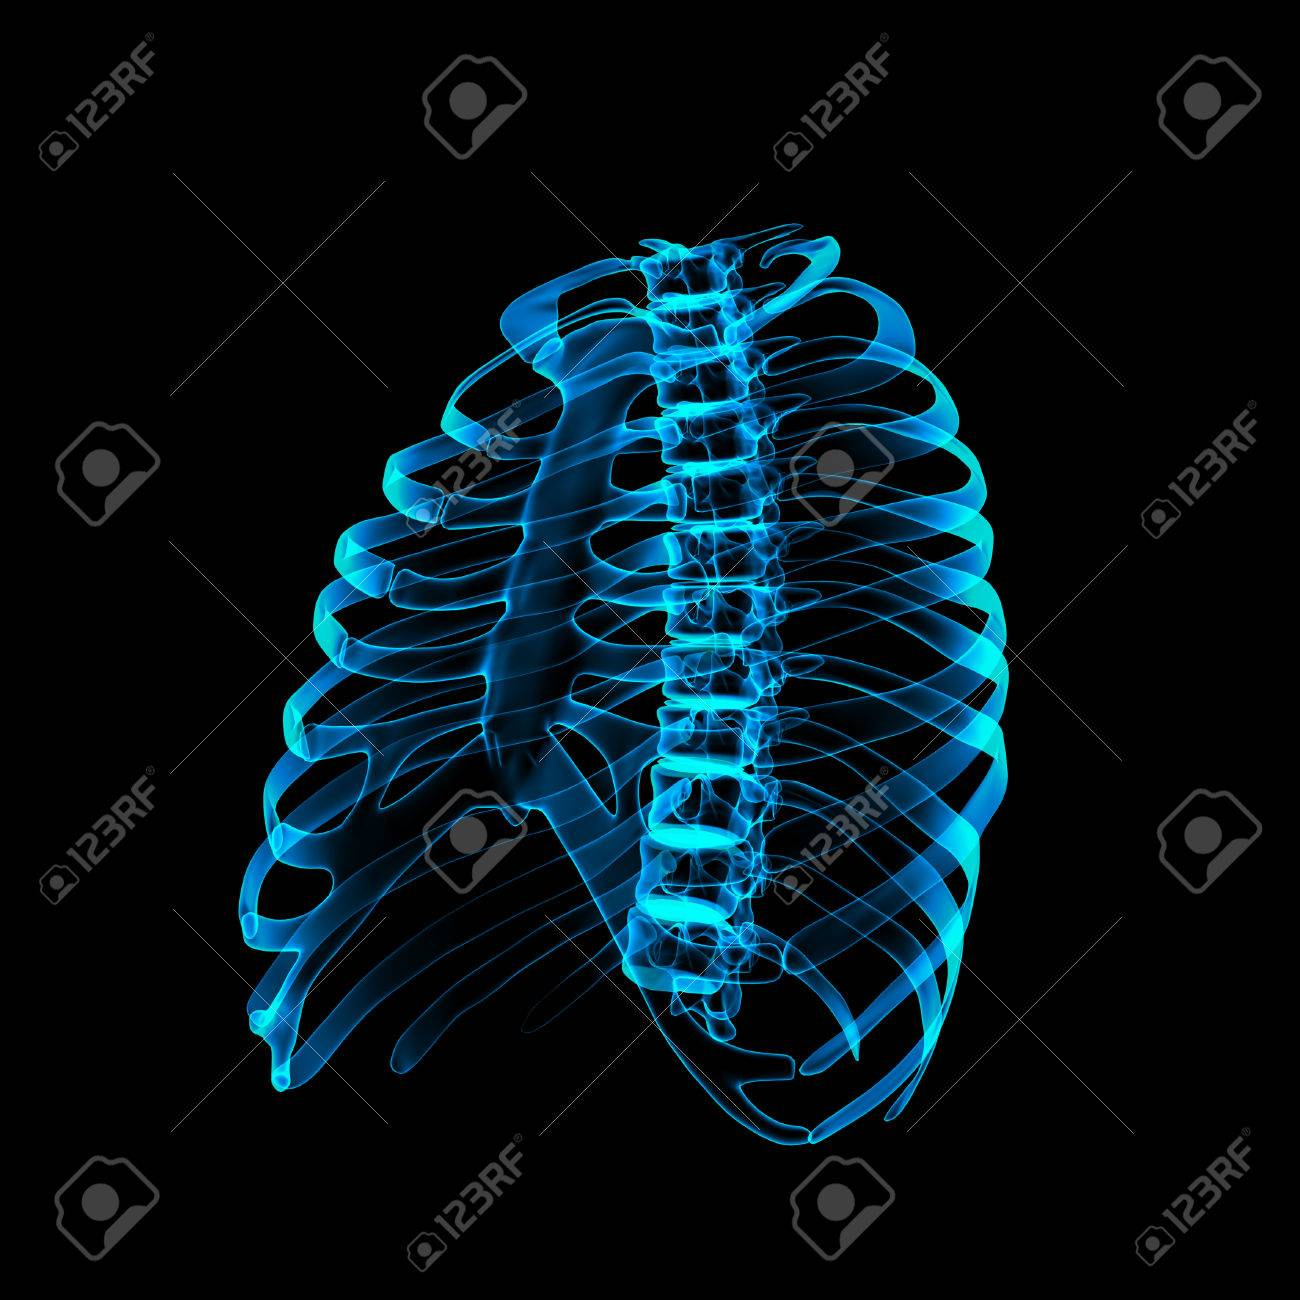 Thoracic Spine X Rays Under 3d Image Stock Photo Picture And